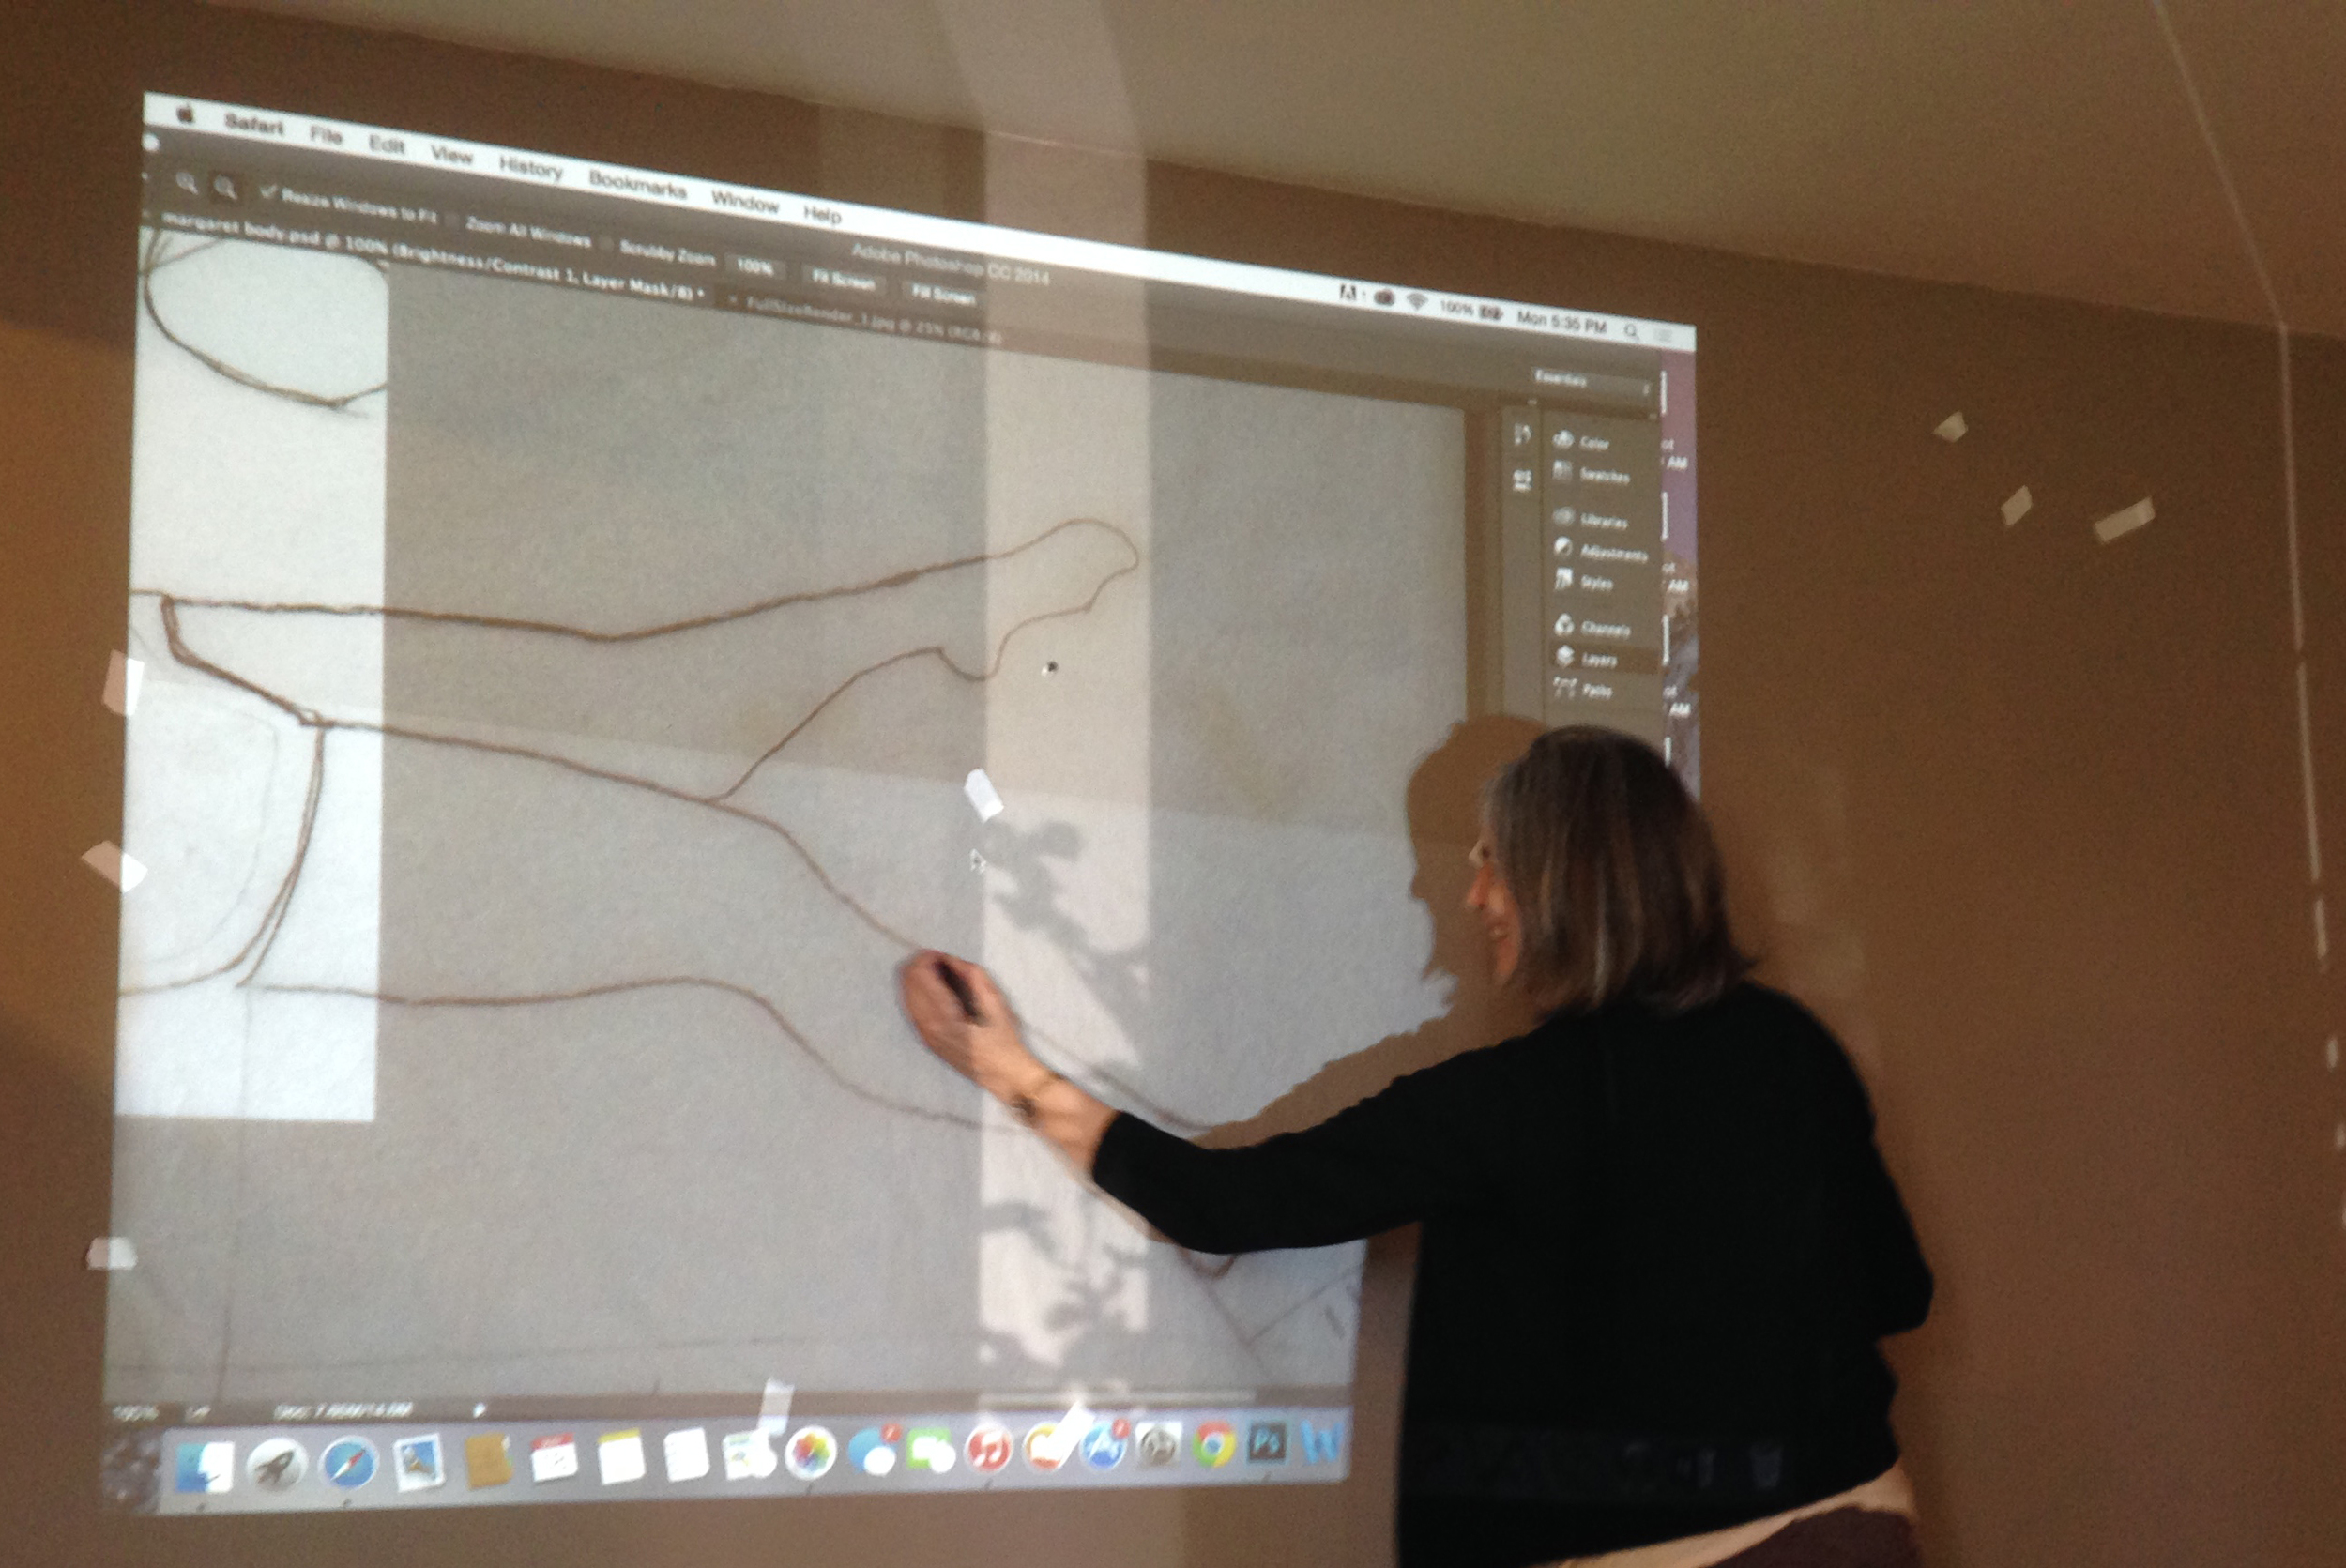 Finding a blank wall to transfer the images to scale was hard. The drawings looked huge in Marisa's house.